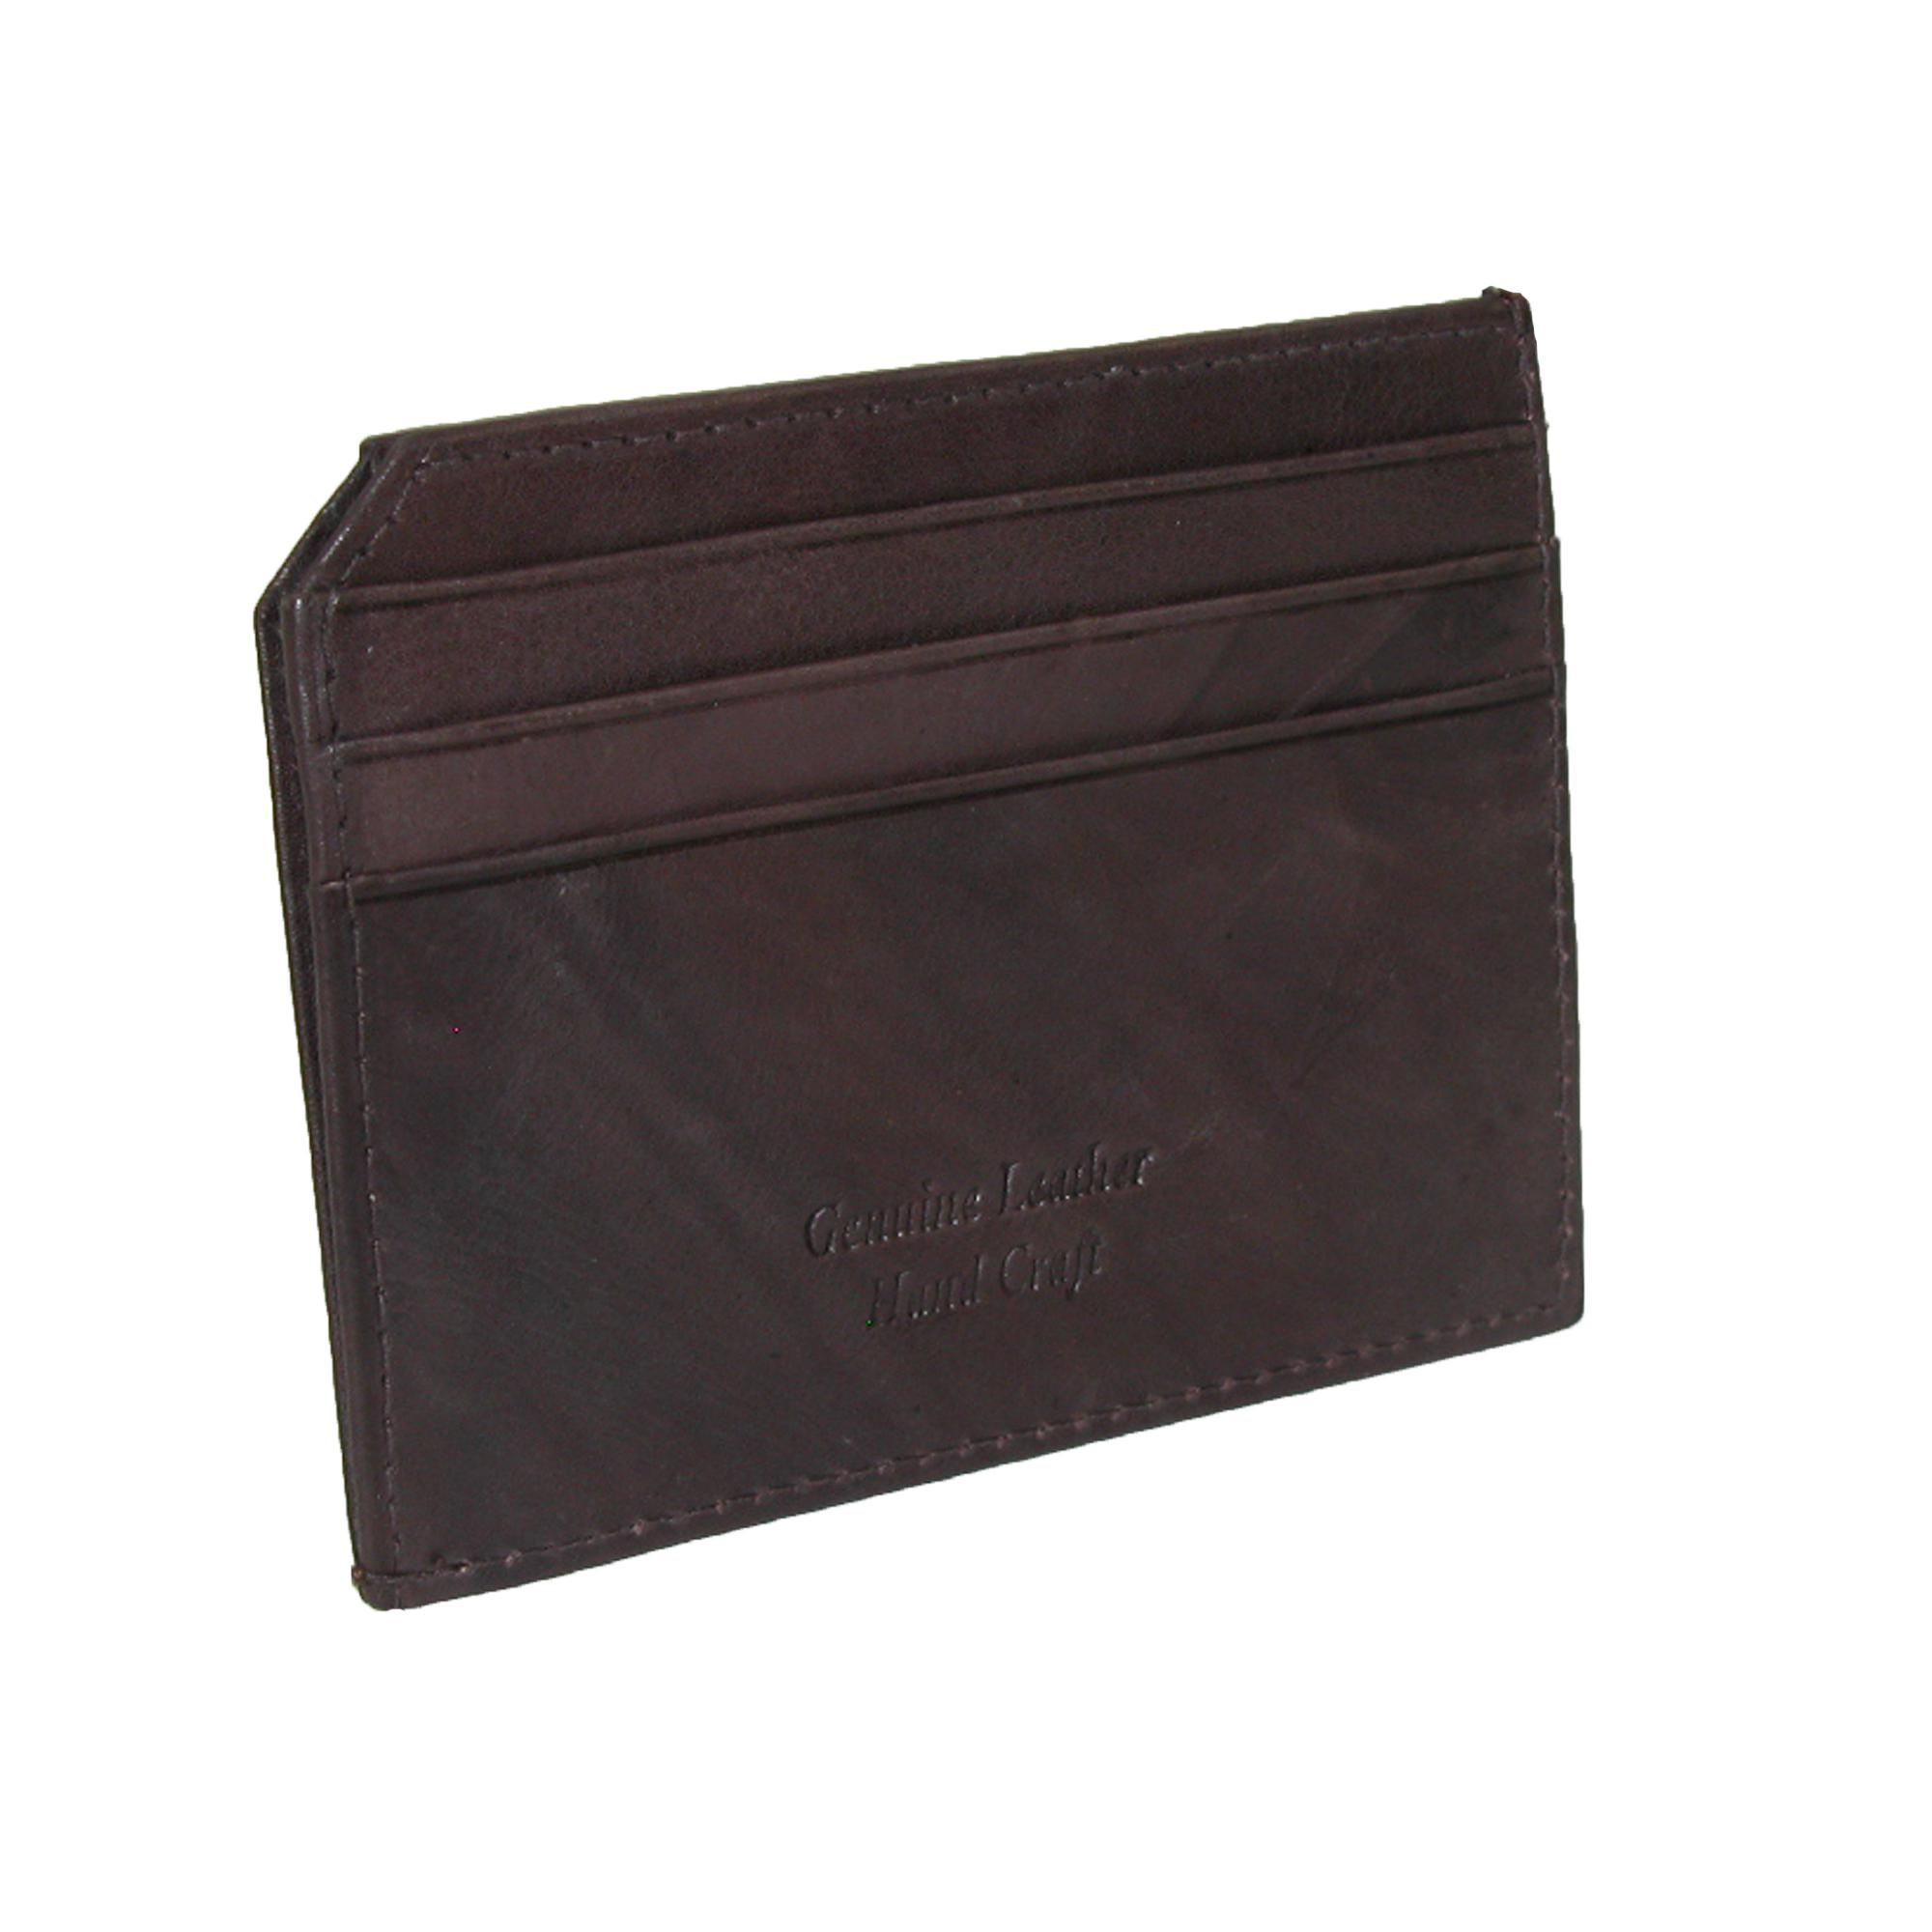 Paul_&_Taylor_Men's_Leather_Slim_ID_Credit_Card_Wallet_-_Brown_one